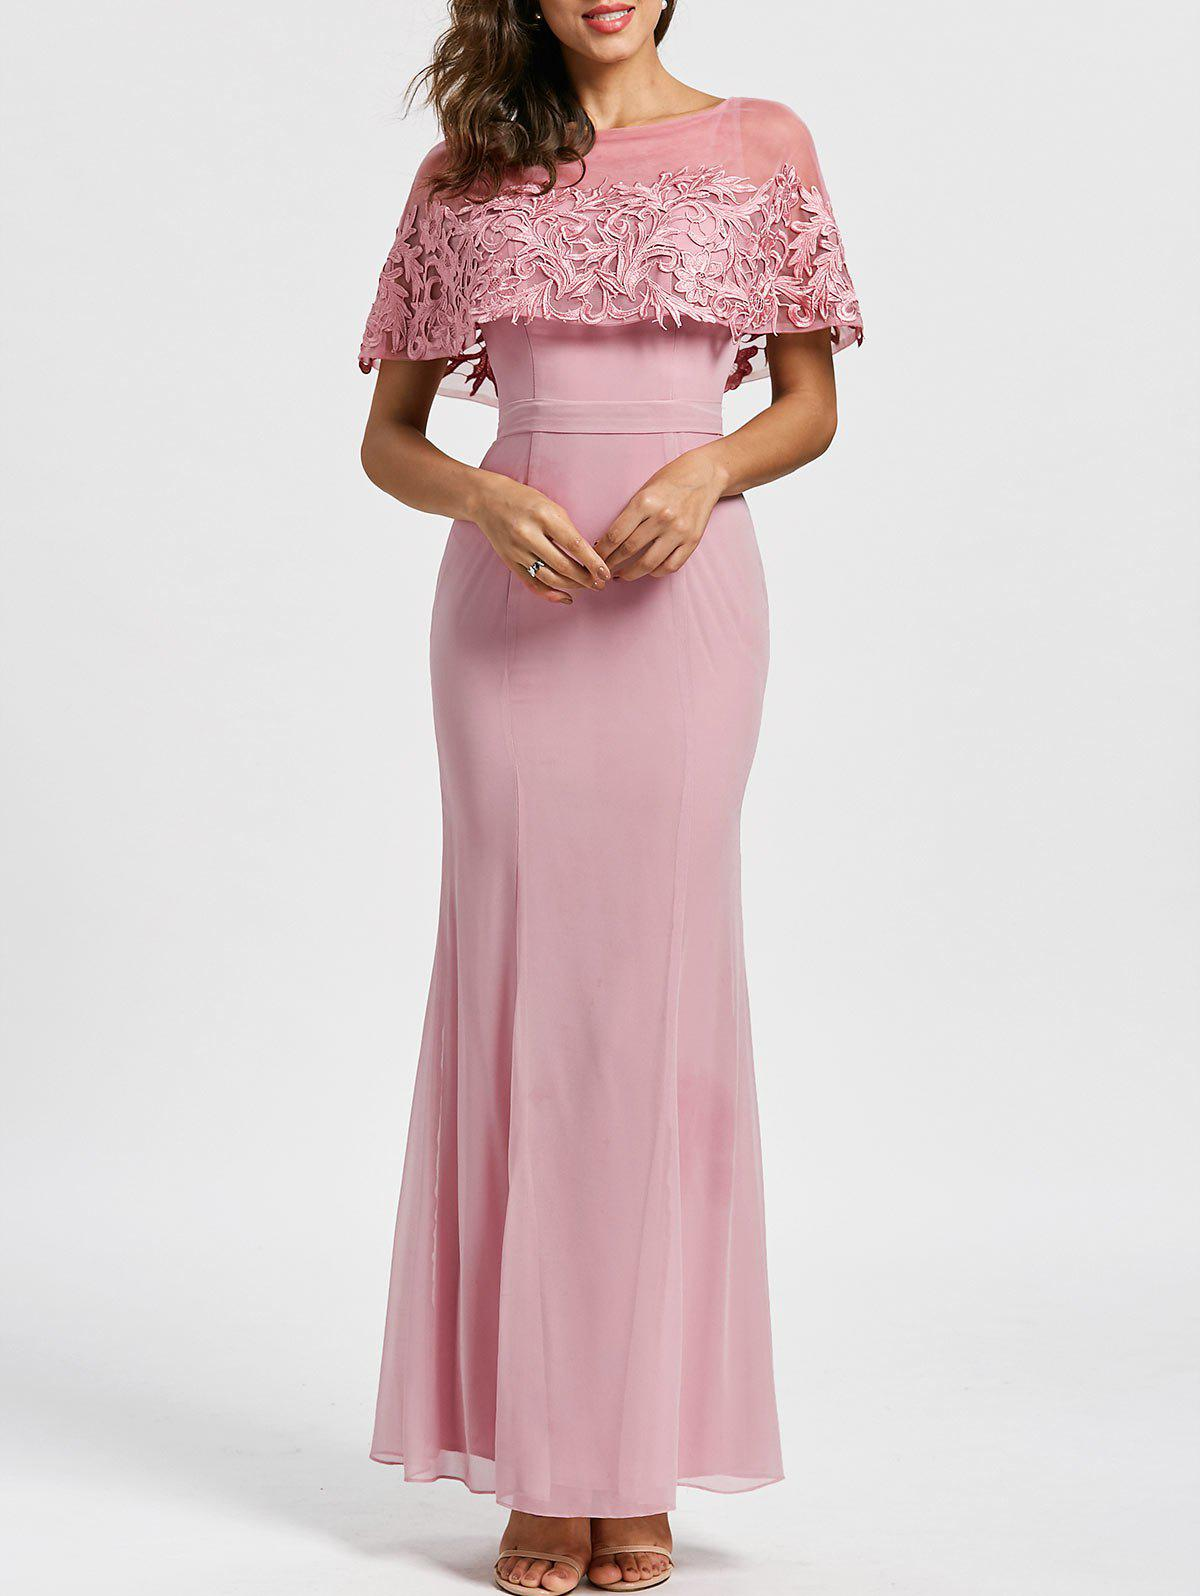 Caplet Floor Length Formal Evening Dress - LIGHT PINK L